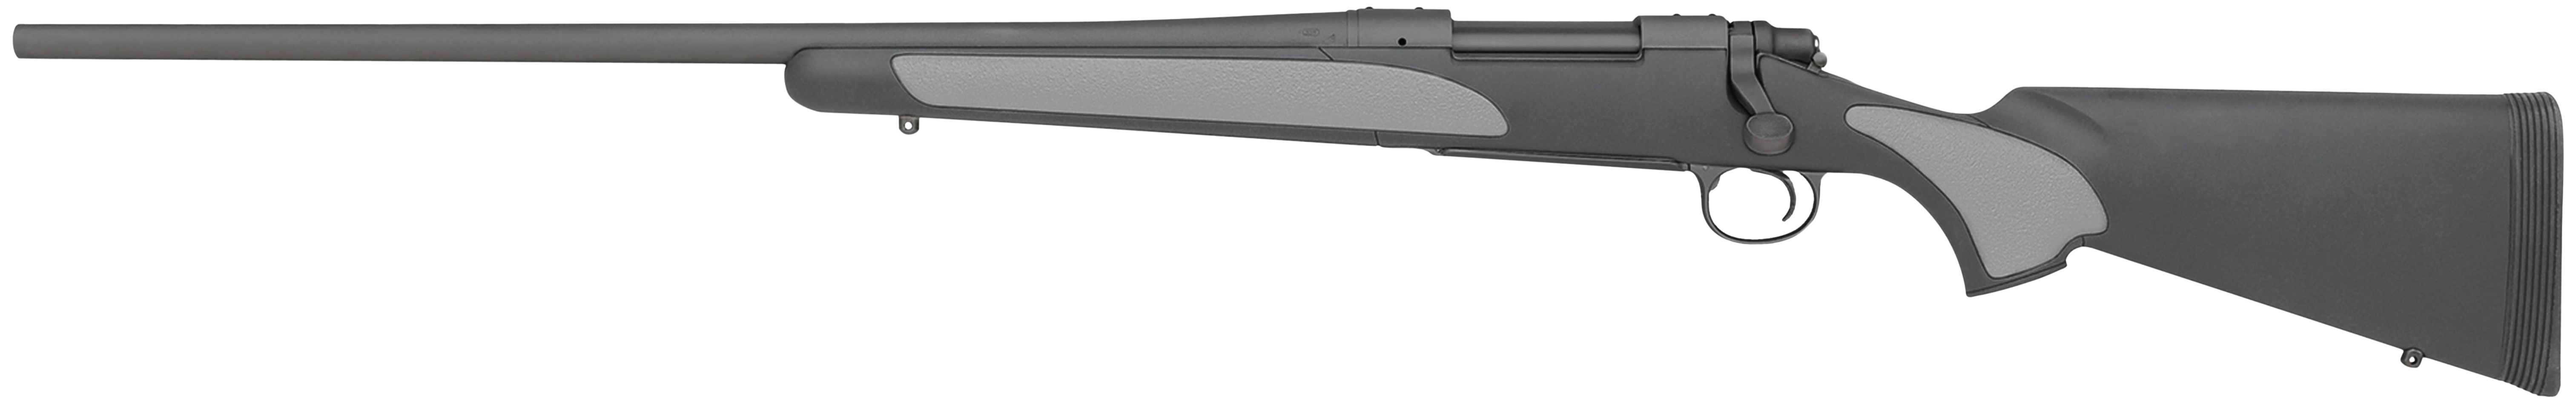 Remington 700 SPS 270 Win 24